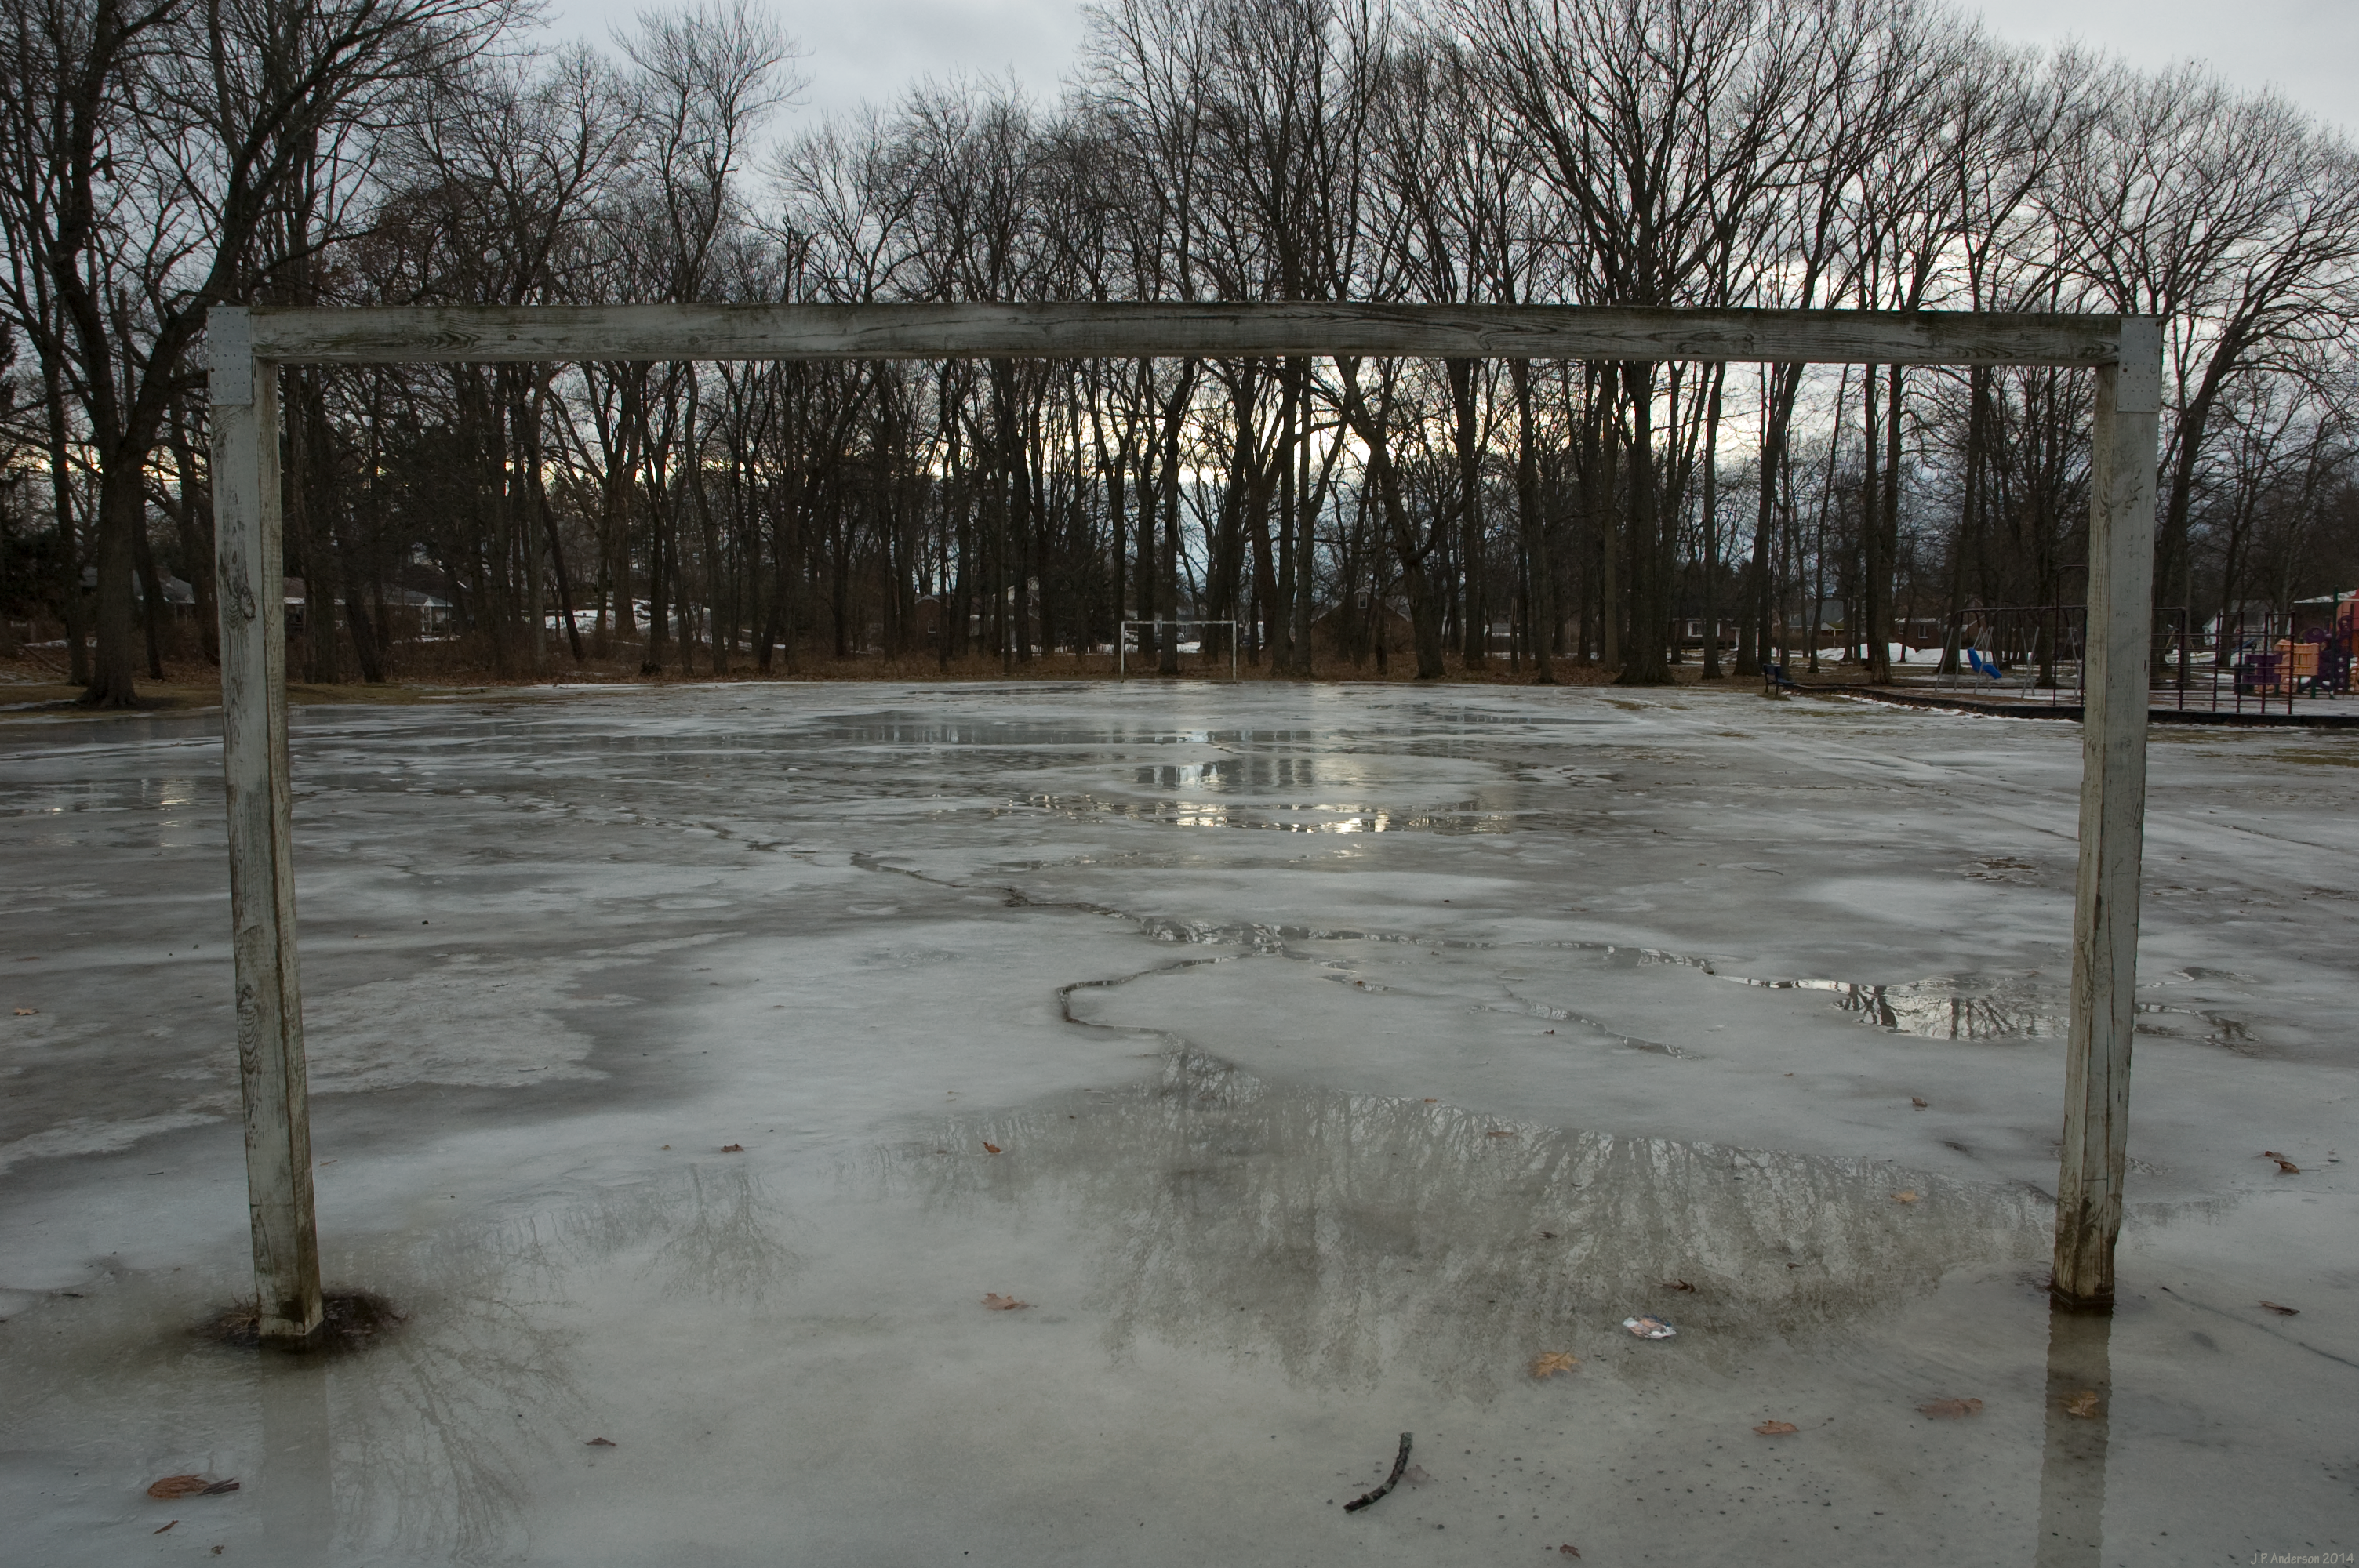 Frozen Soccer Field (2) - (Schenectady, New York) by jackthetab